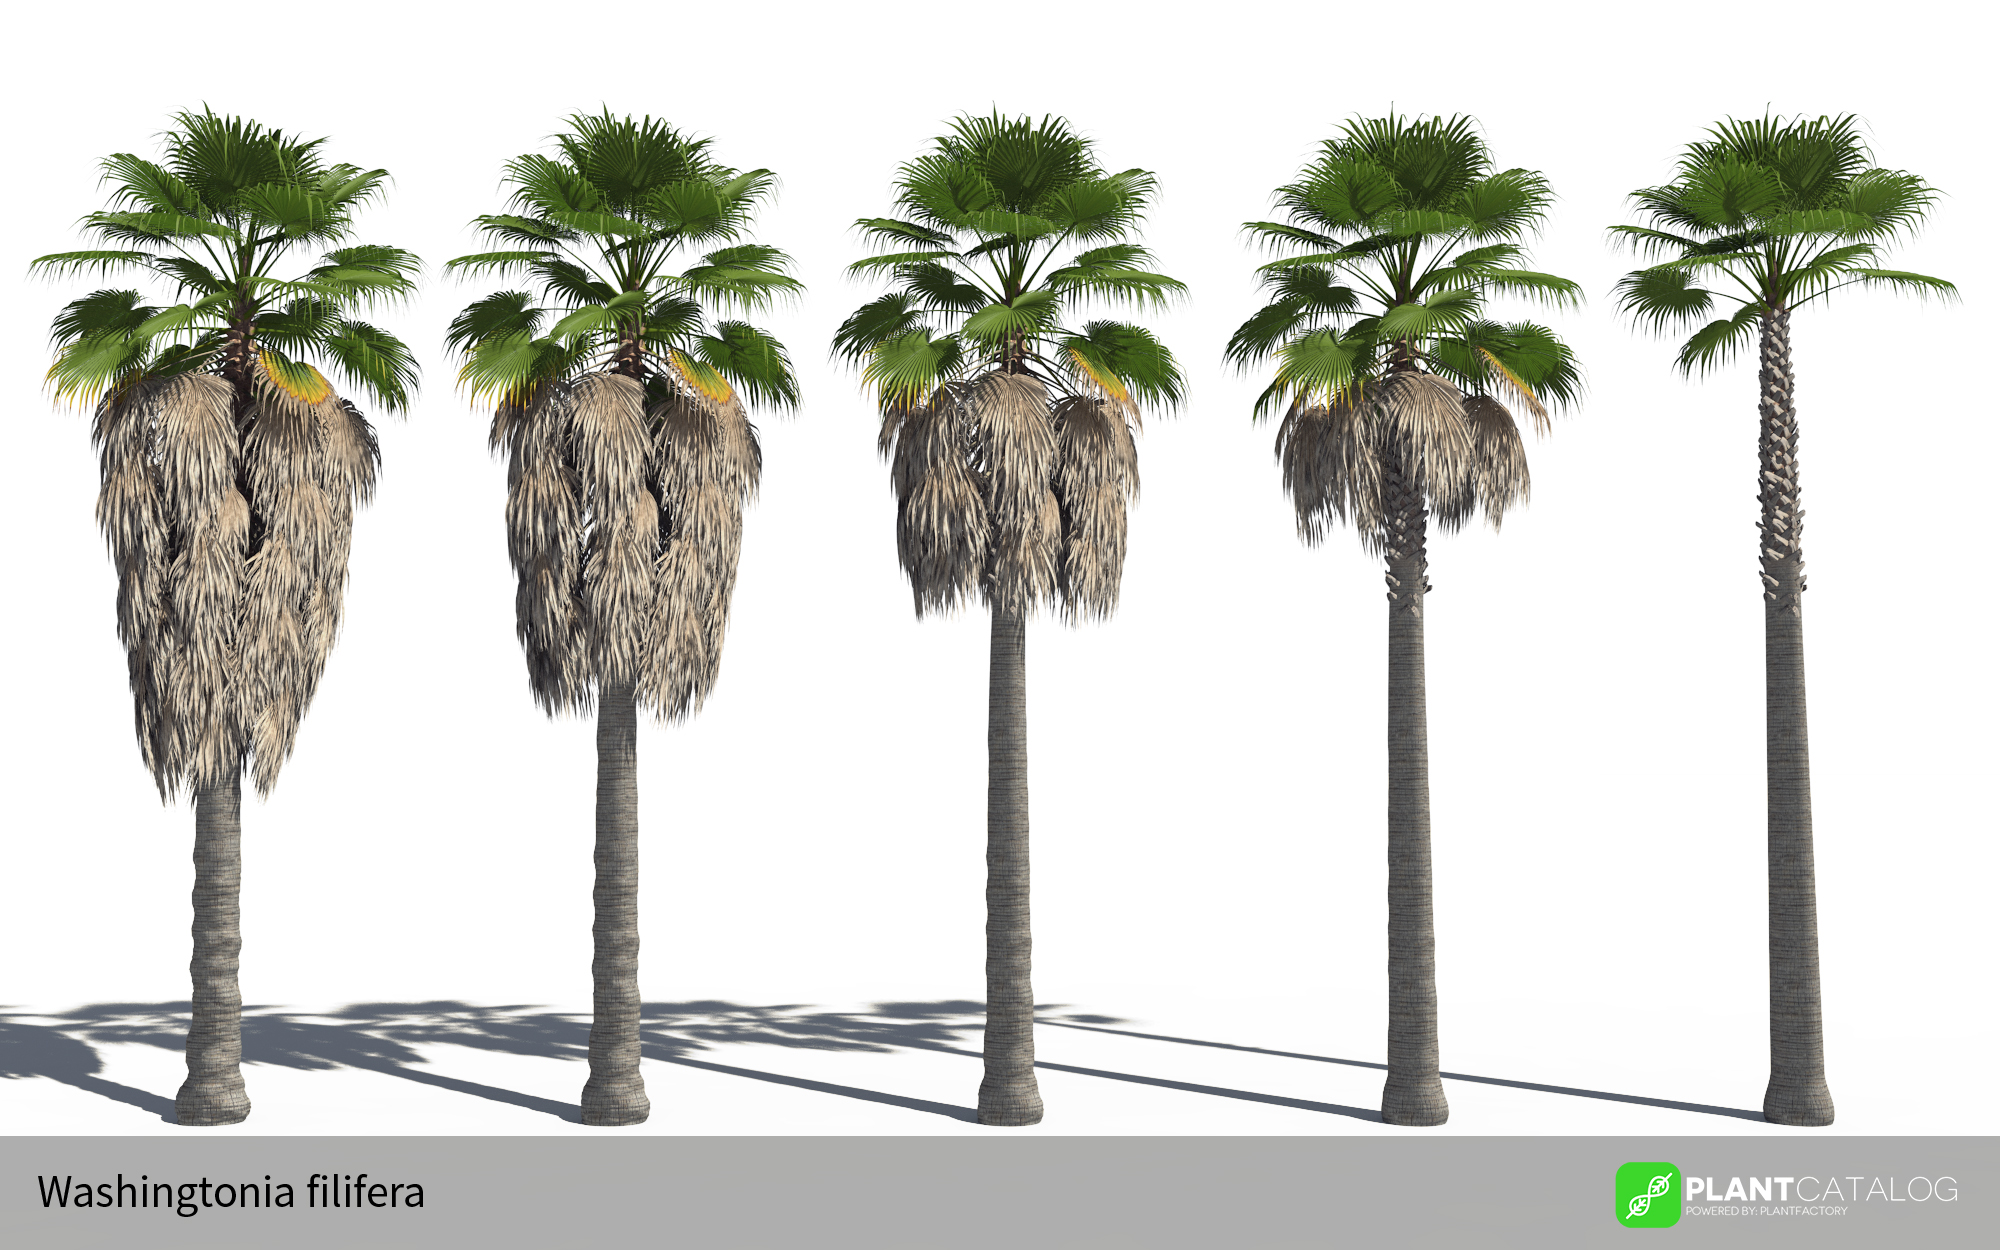 3D model of the California fan palm - Washingtonia filifera - from the PlantCatalog, rendered in VUE